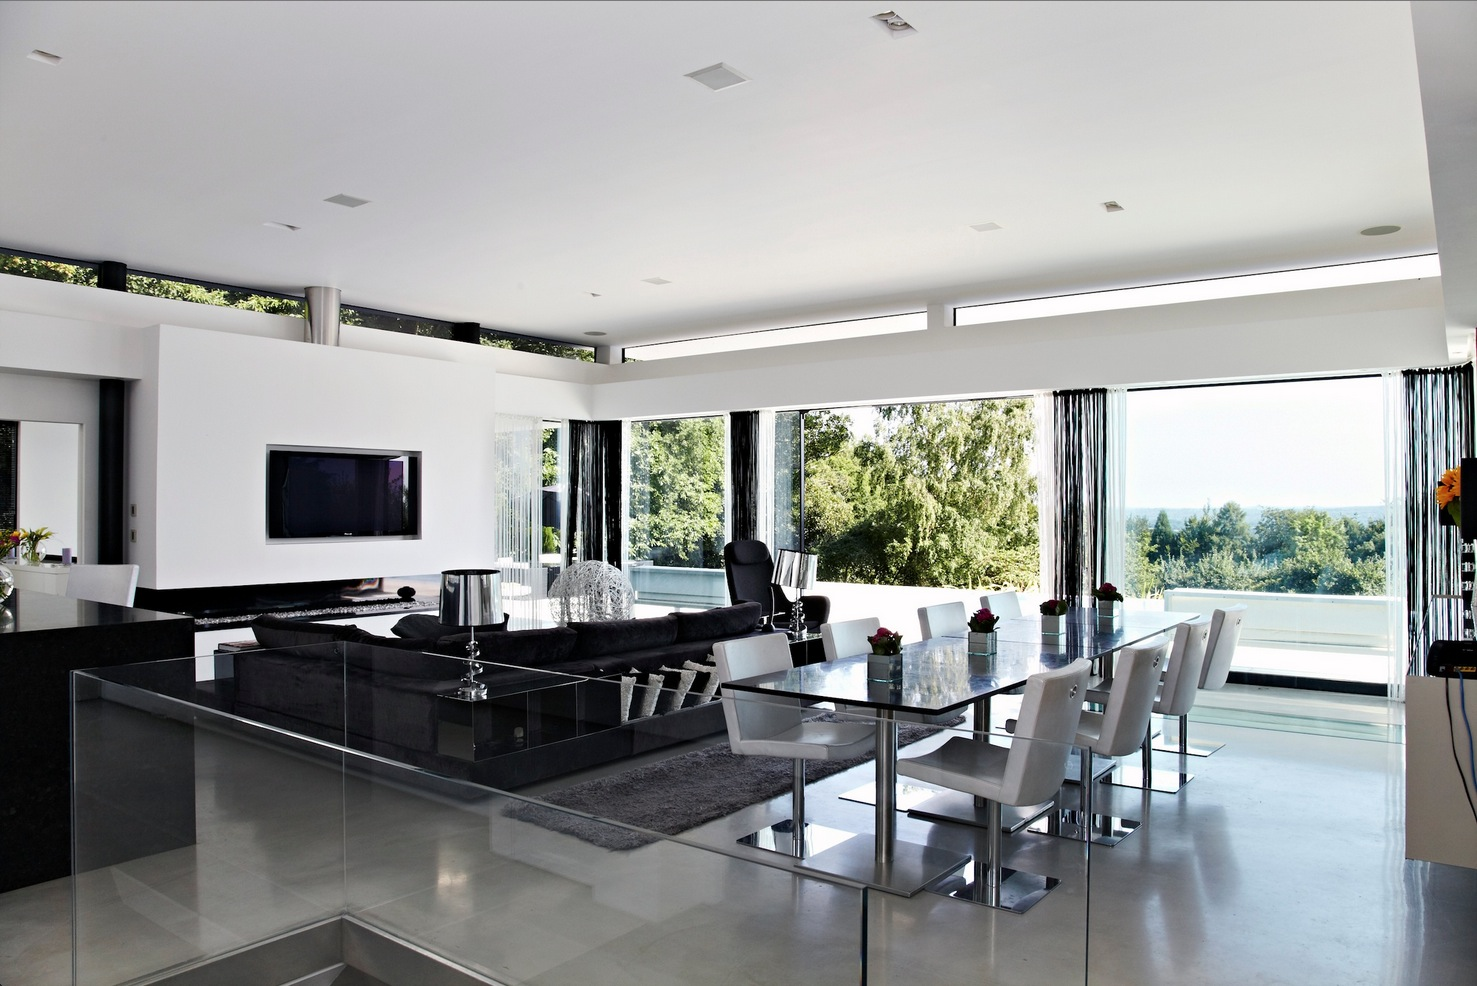 Black And White Interior Design Furthermore White Kitchens With Black